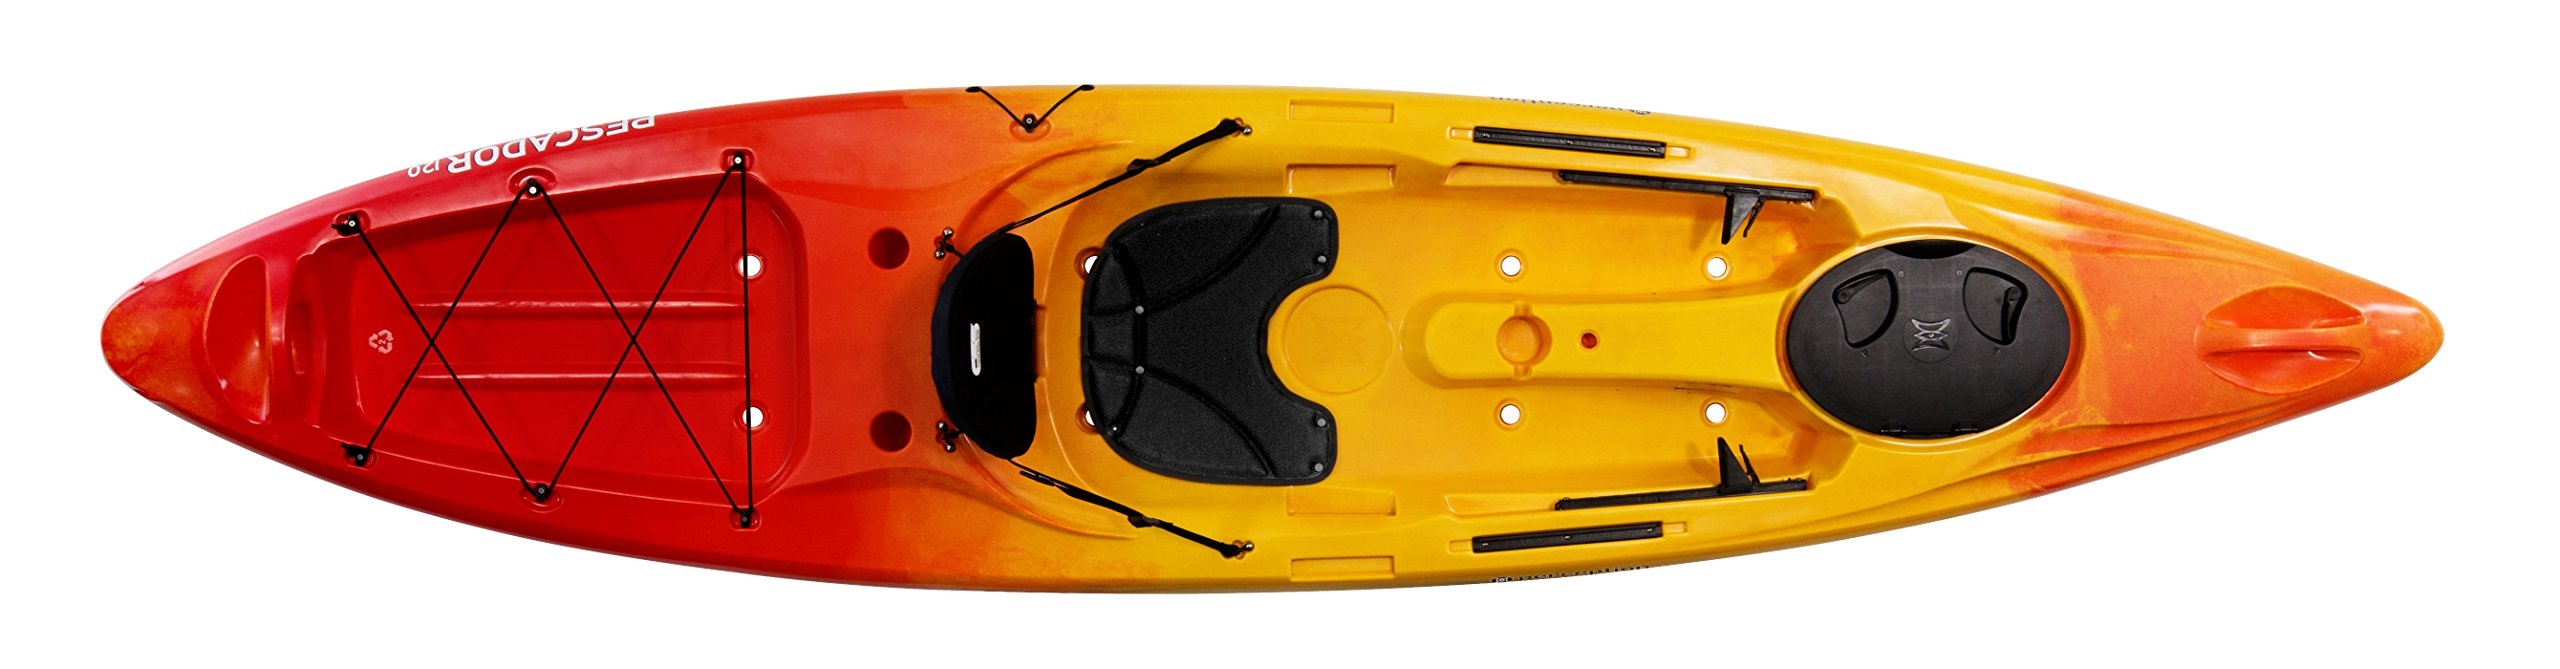 Perception Kayak Pescador Sit On Top for Recreation by Perception Kayaks